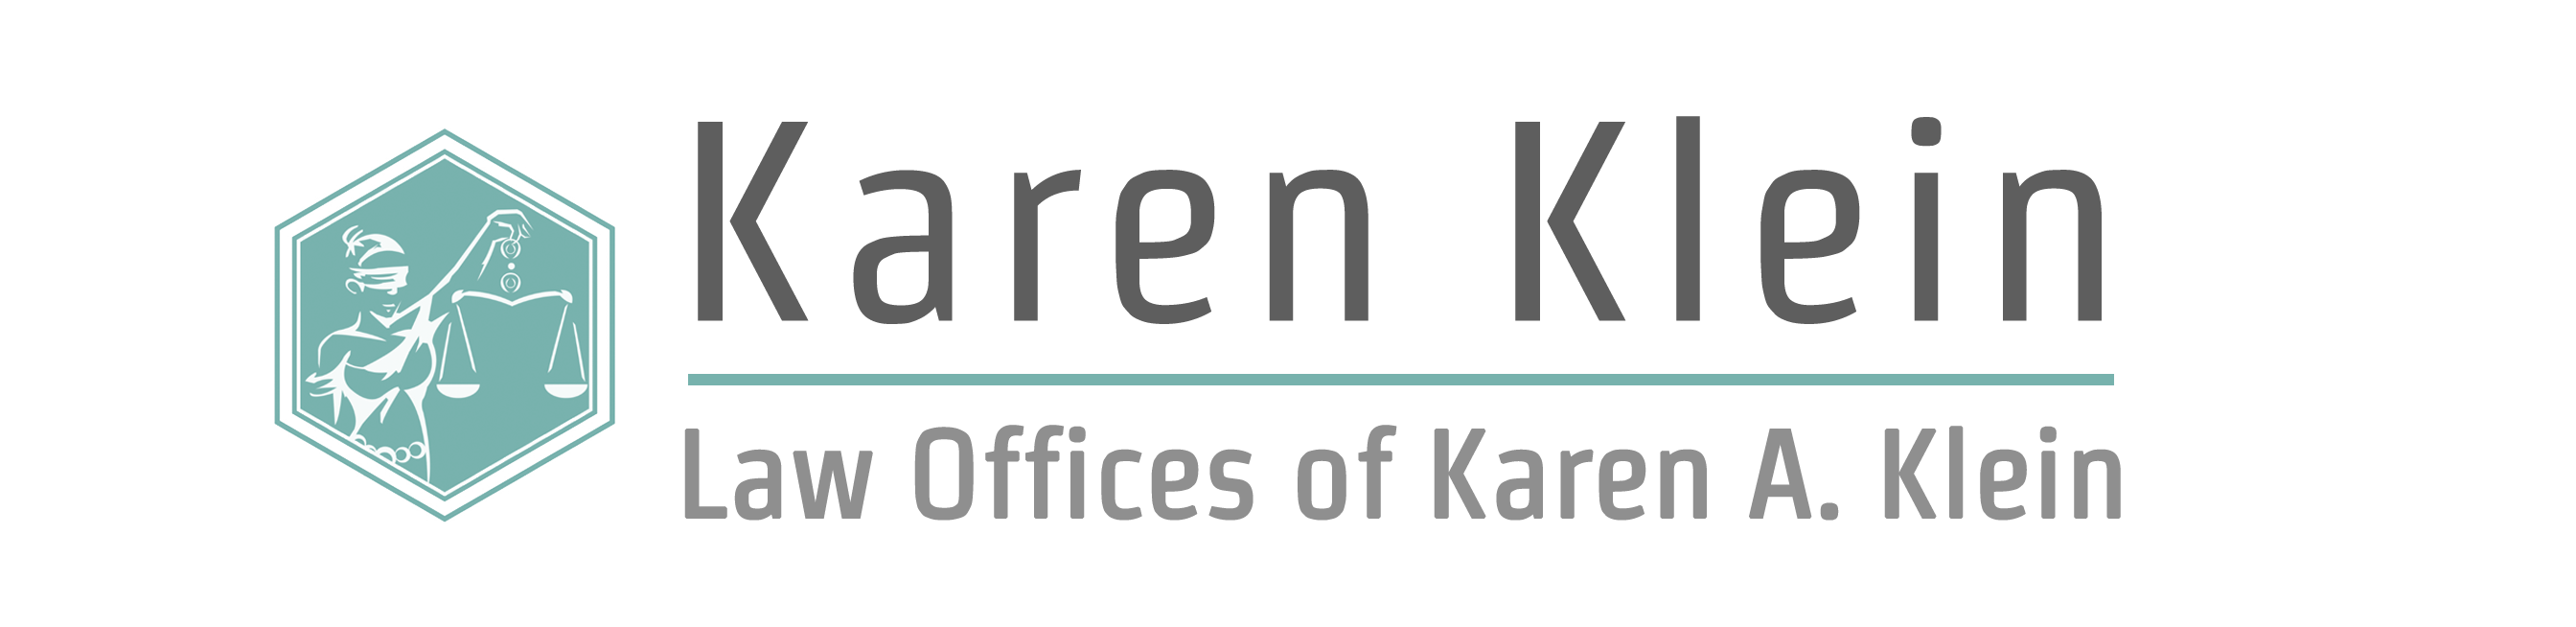 Karen Klein Law